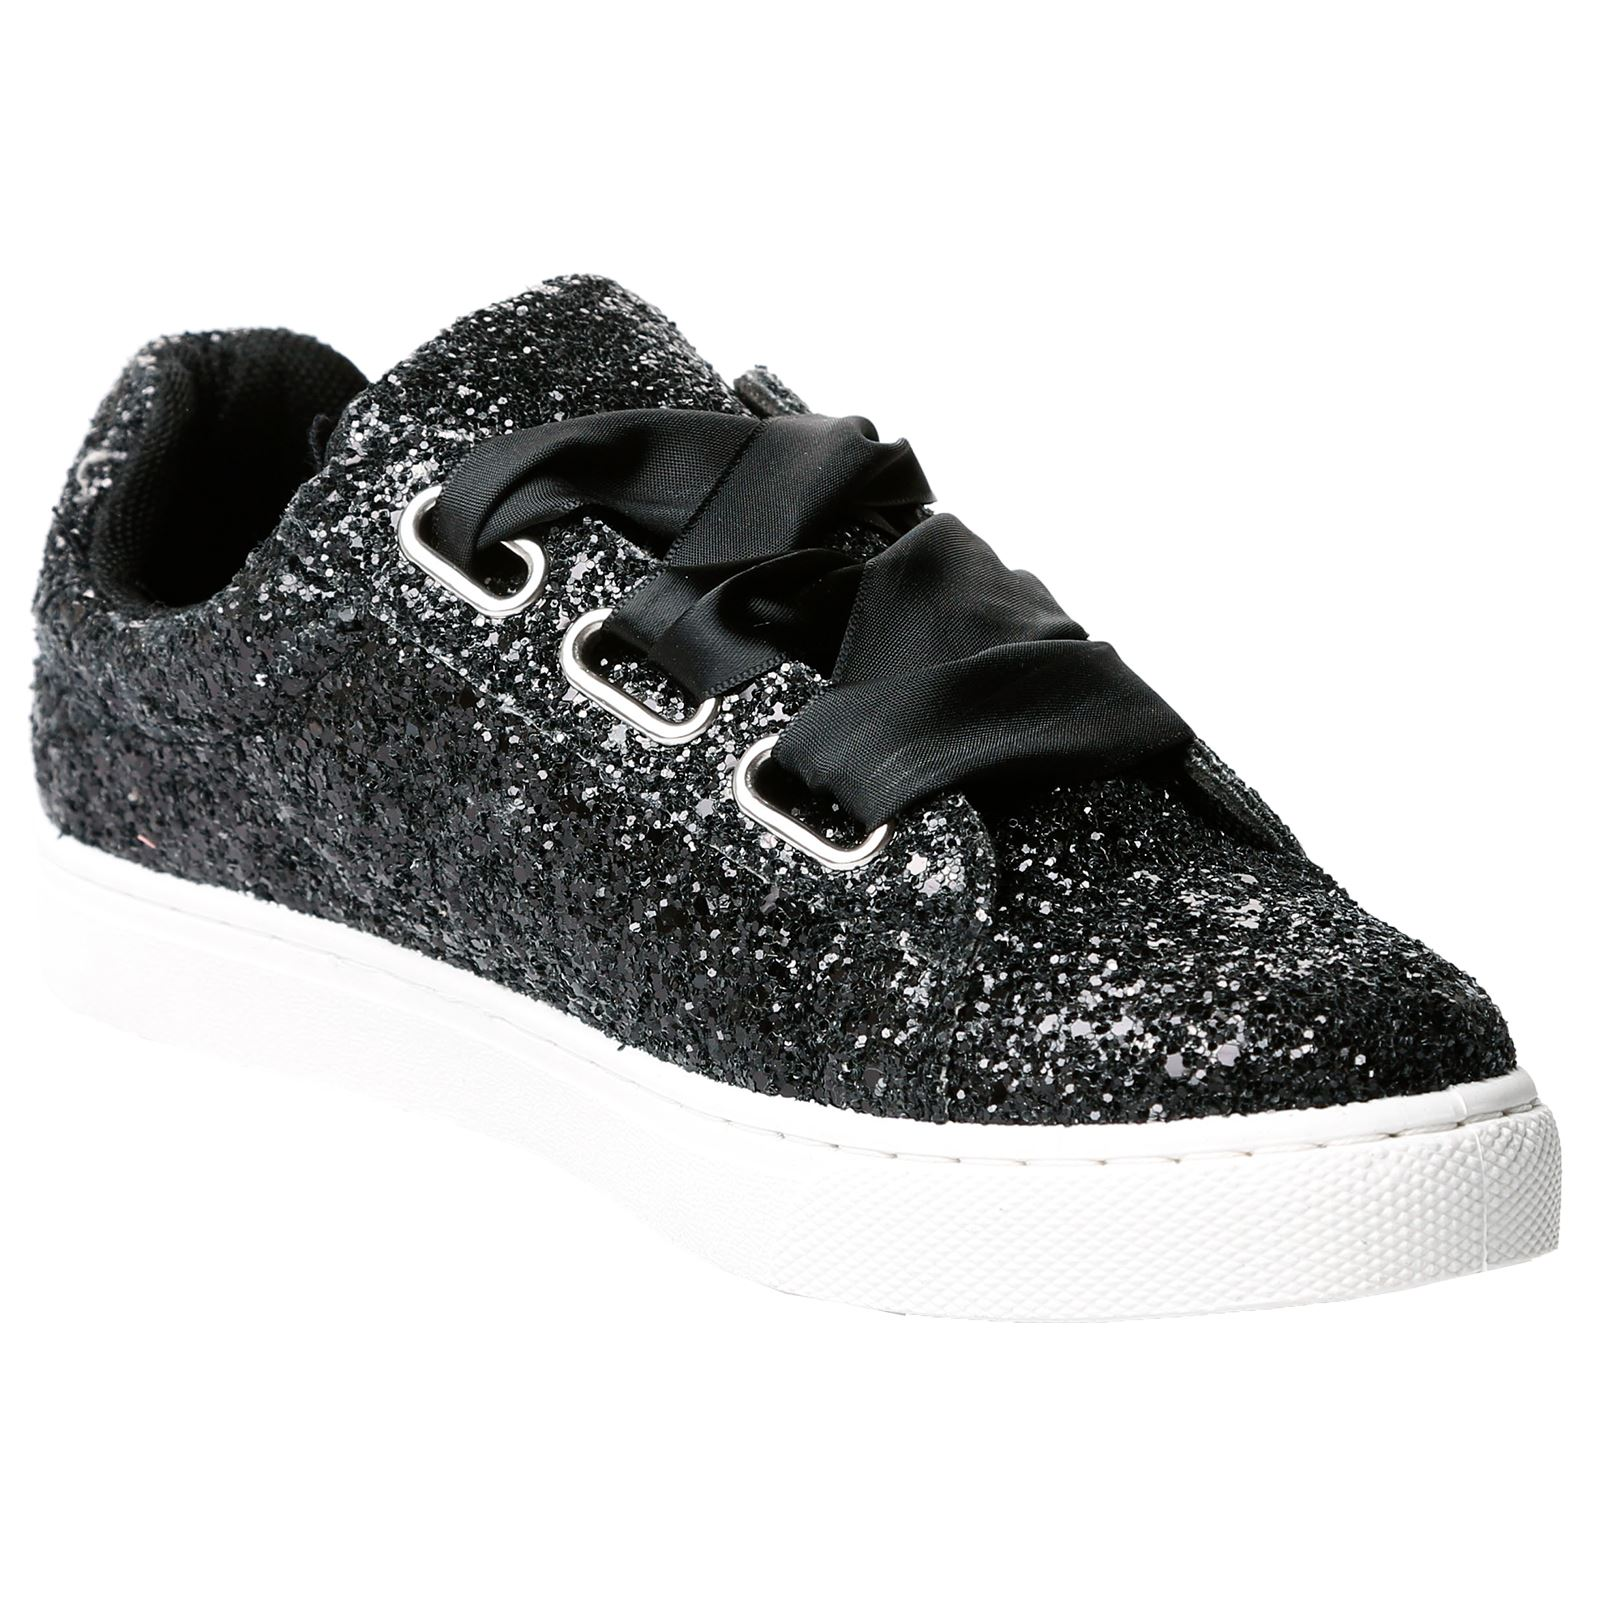 Find sparkly shoes from a vast selection of